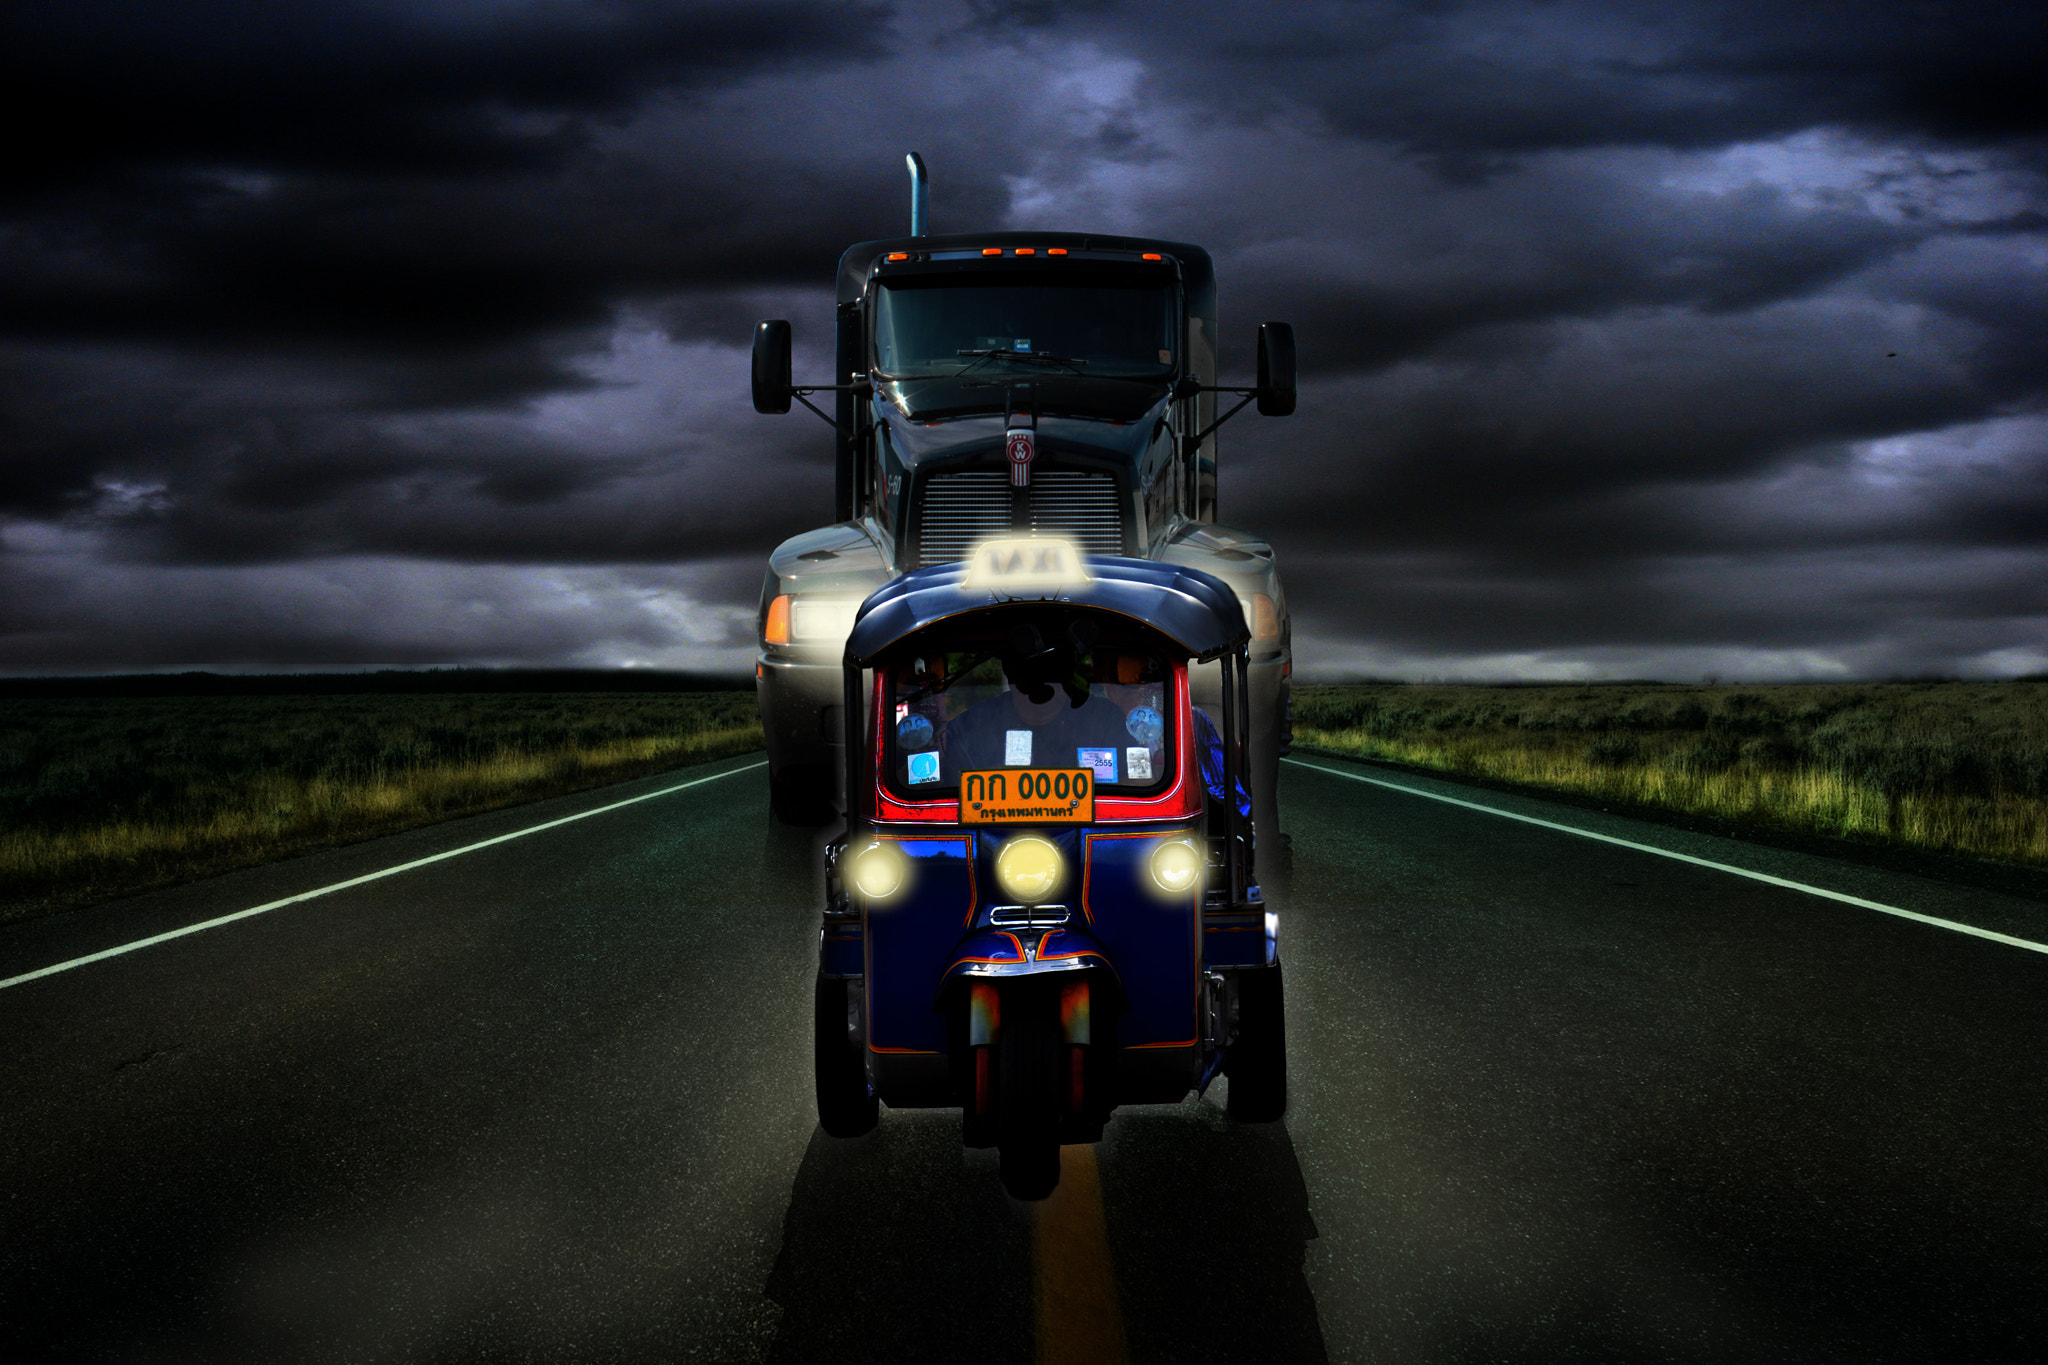 Photograph ghost rider by Kittiwut Chuamrassamee on 500px